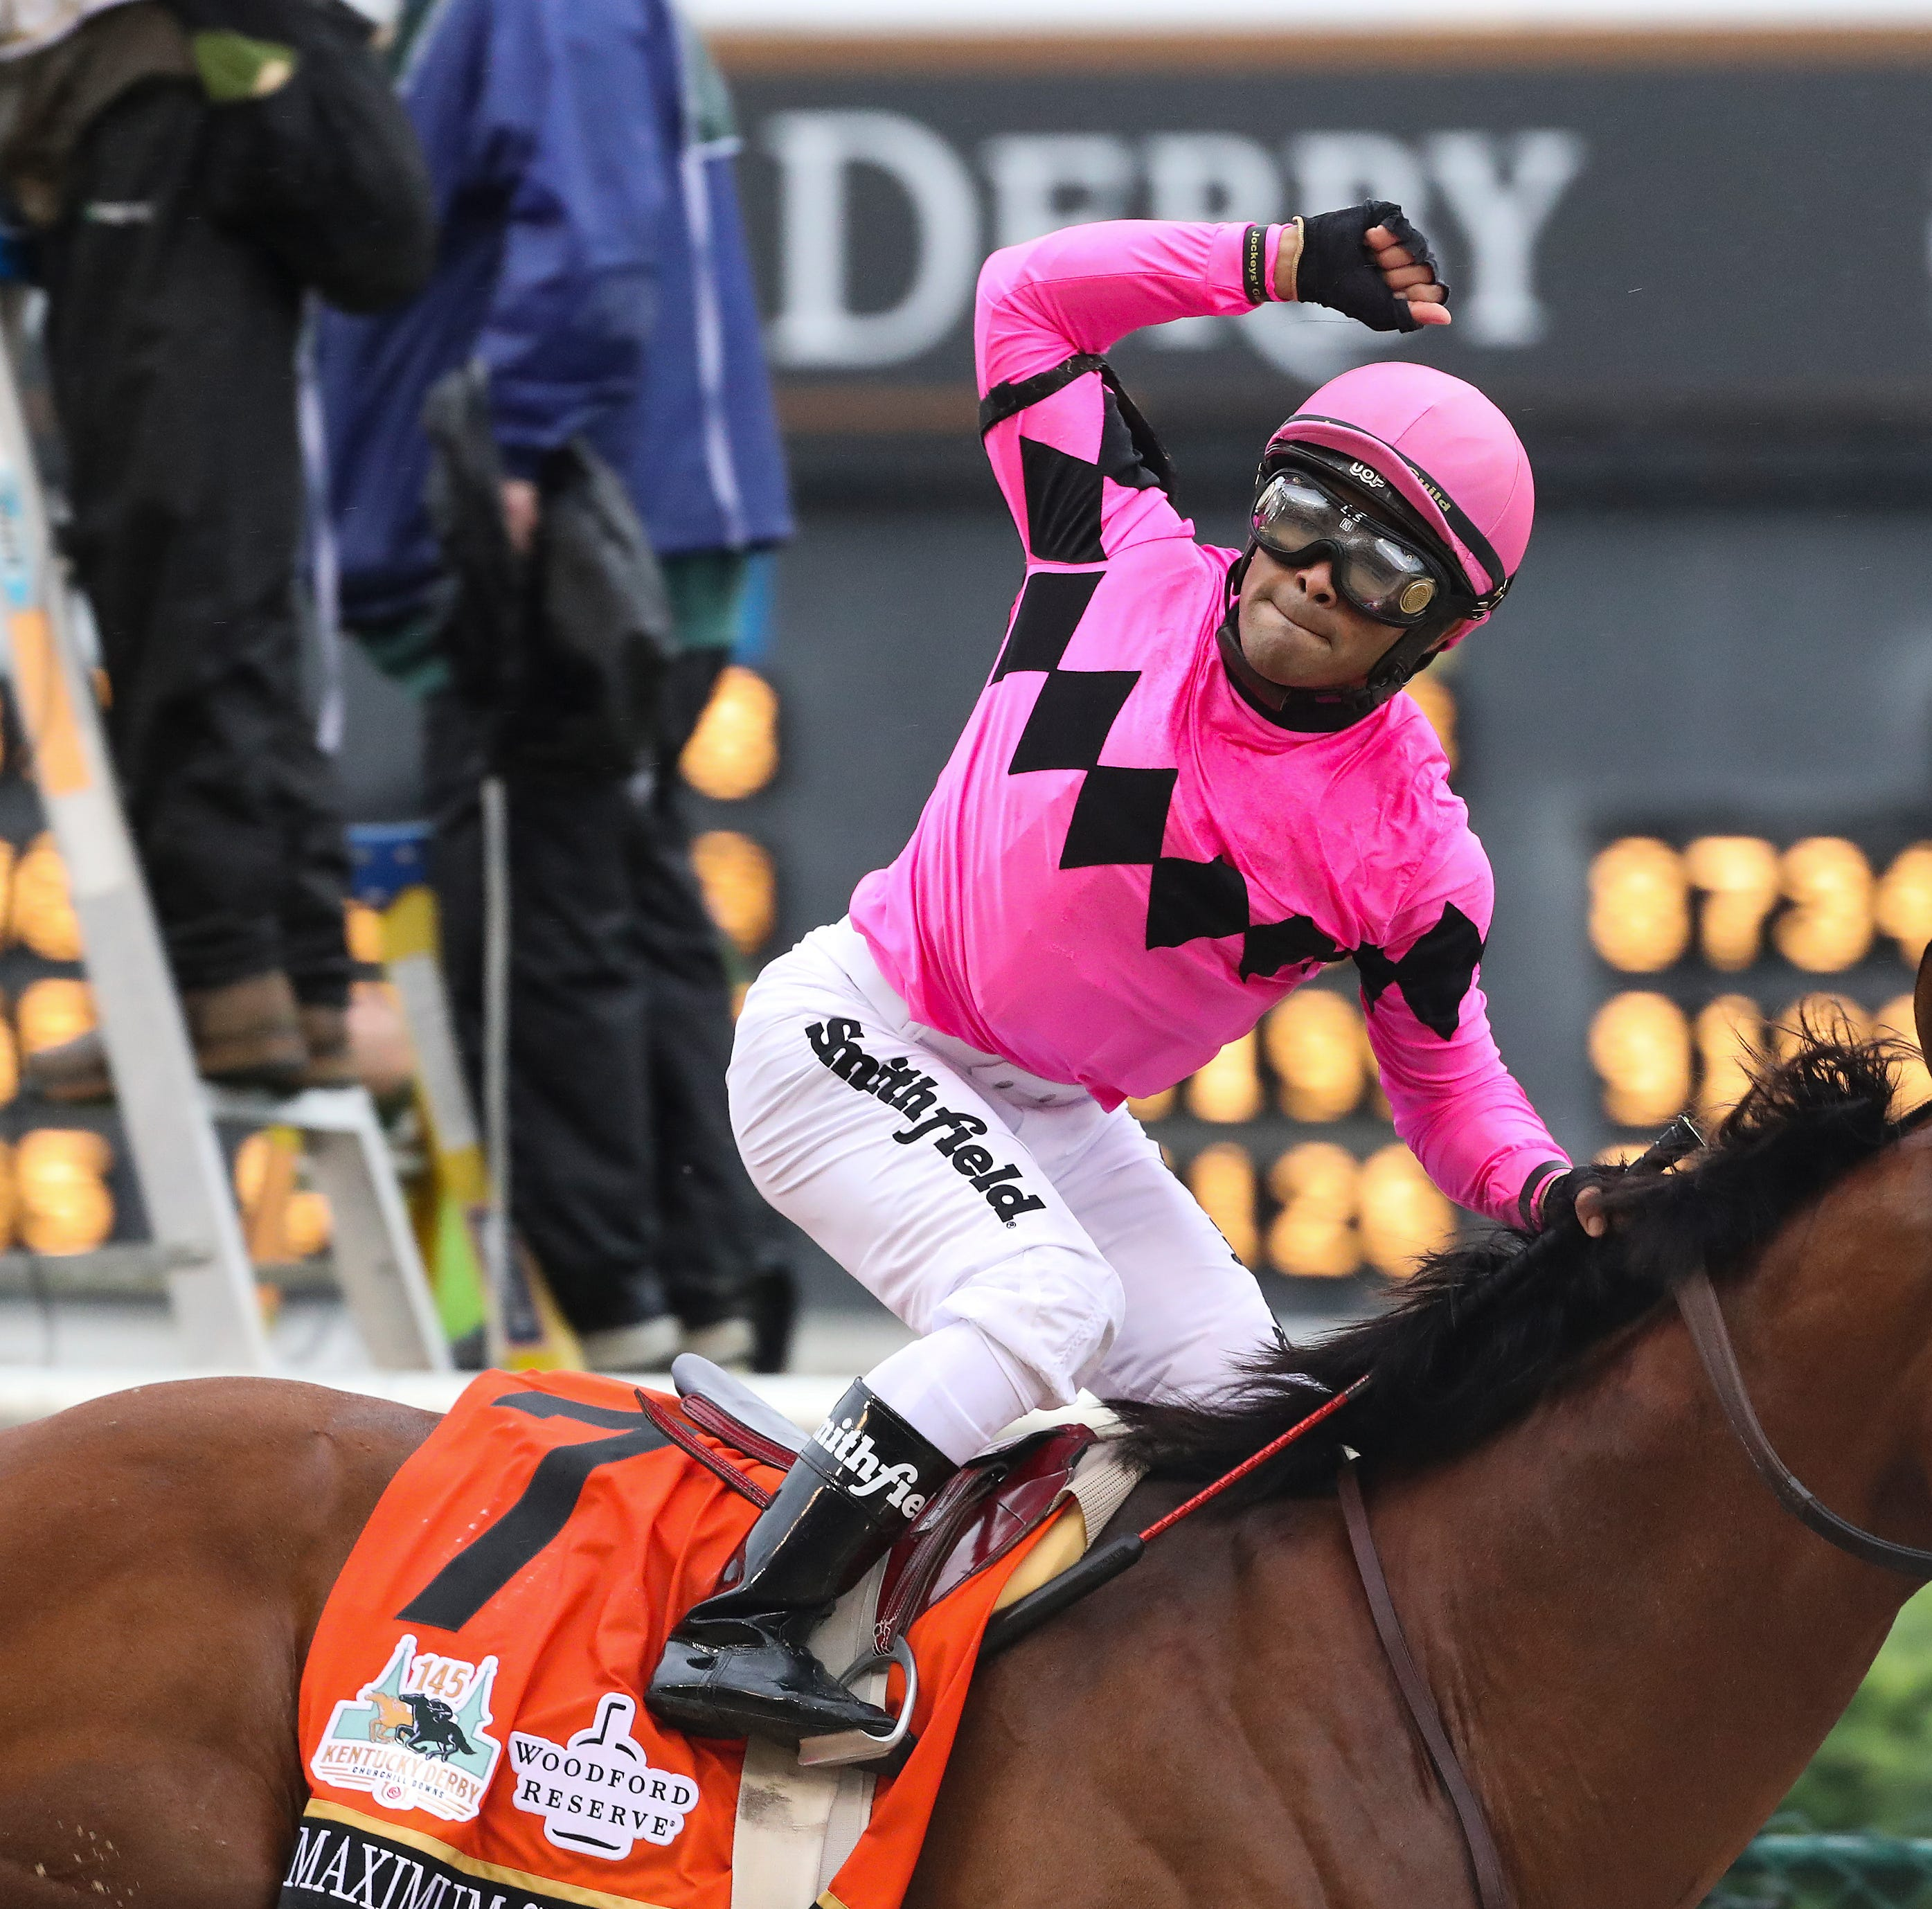 Maximum Security owner plans Derby appeal, says disqualified horse won't run in Preakness